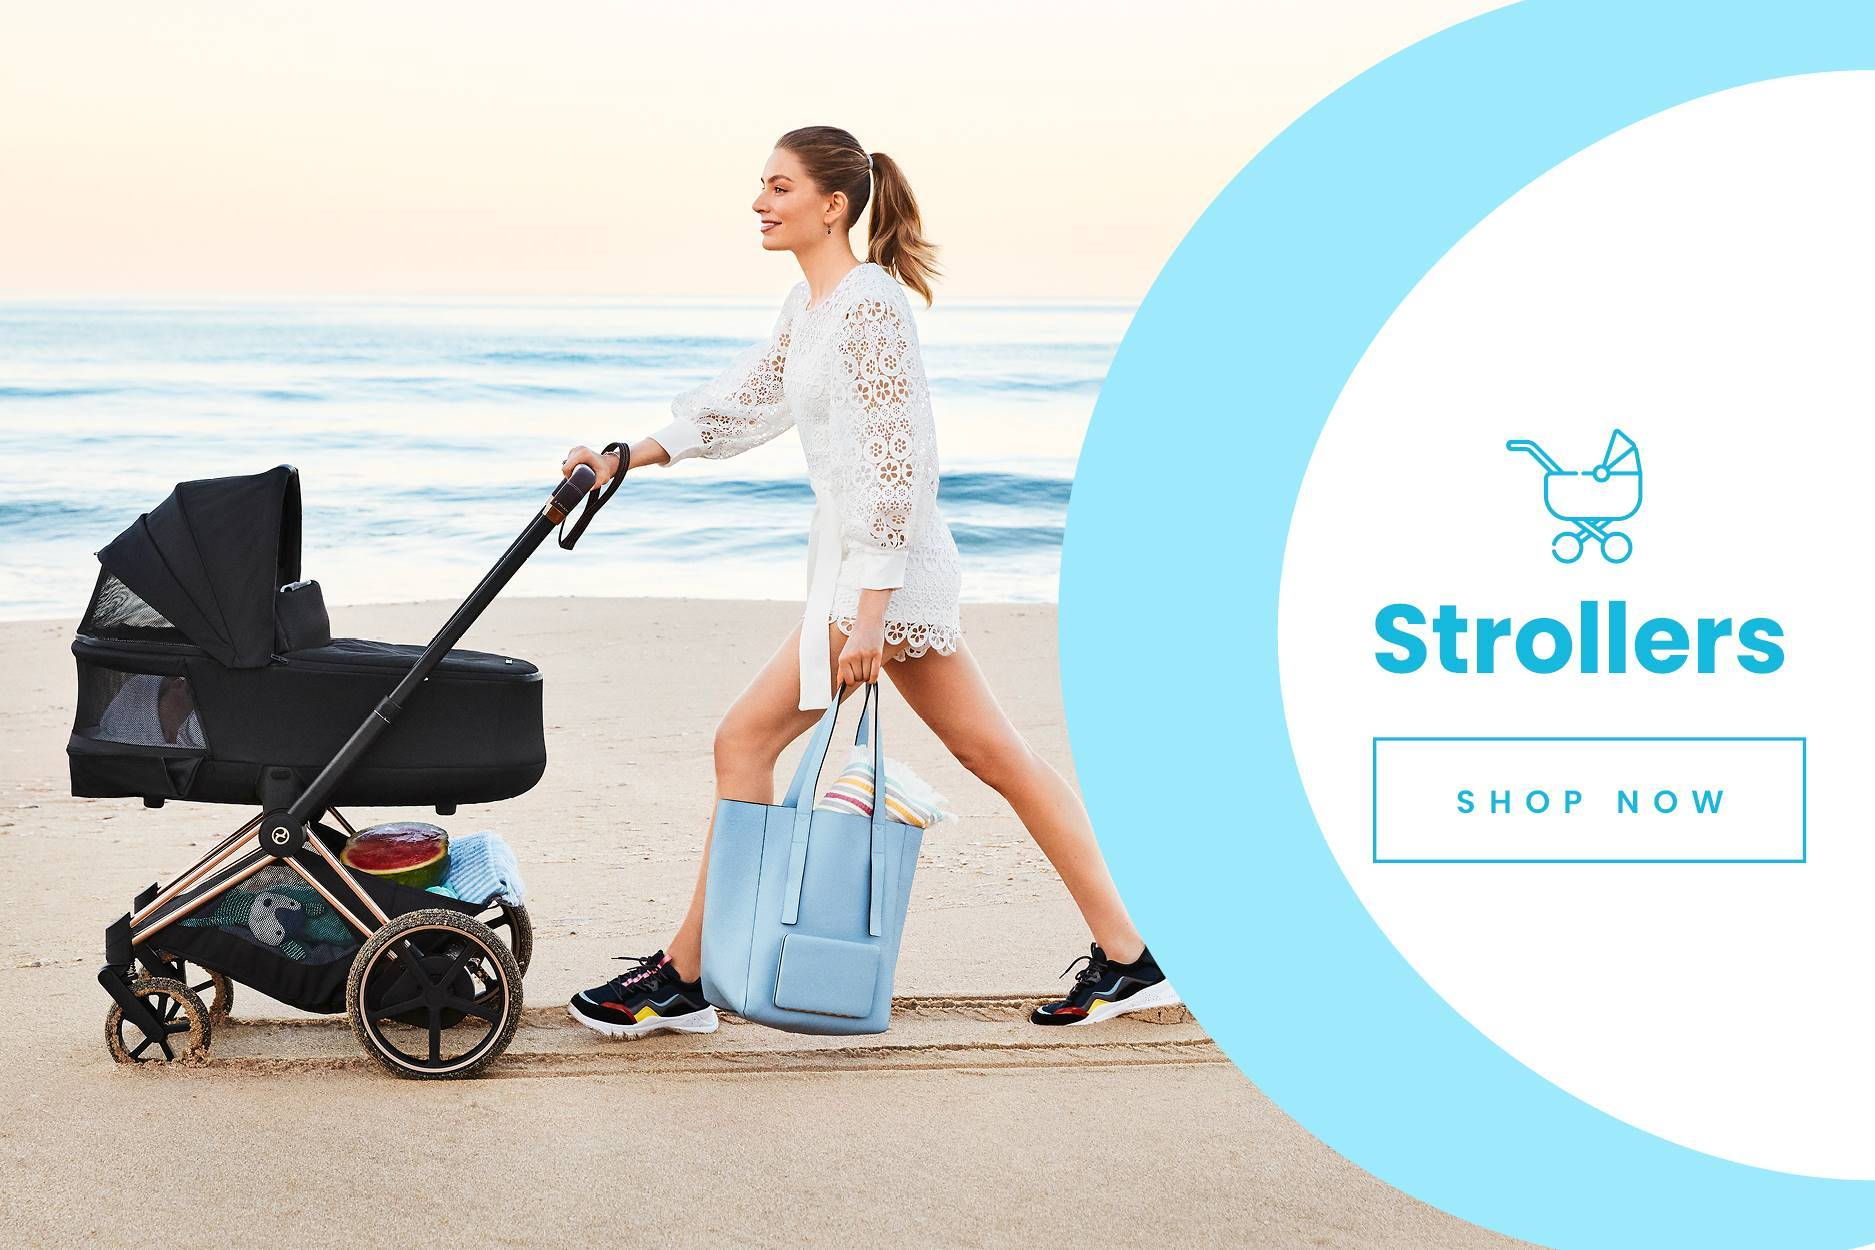 Shop the best strollers - Luna Baby Store